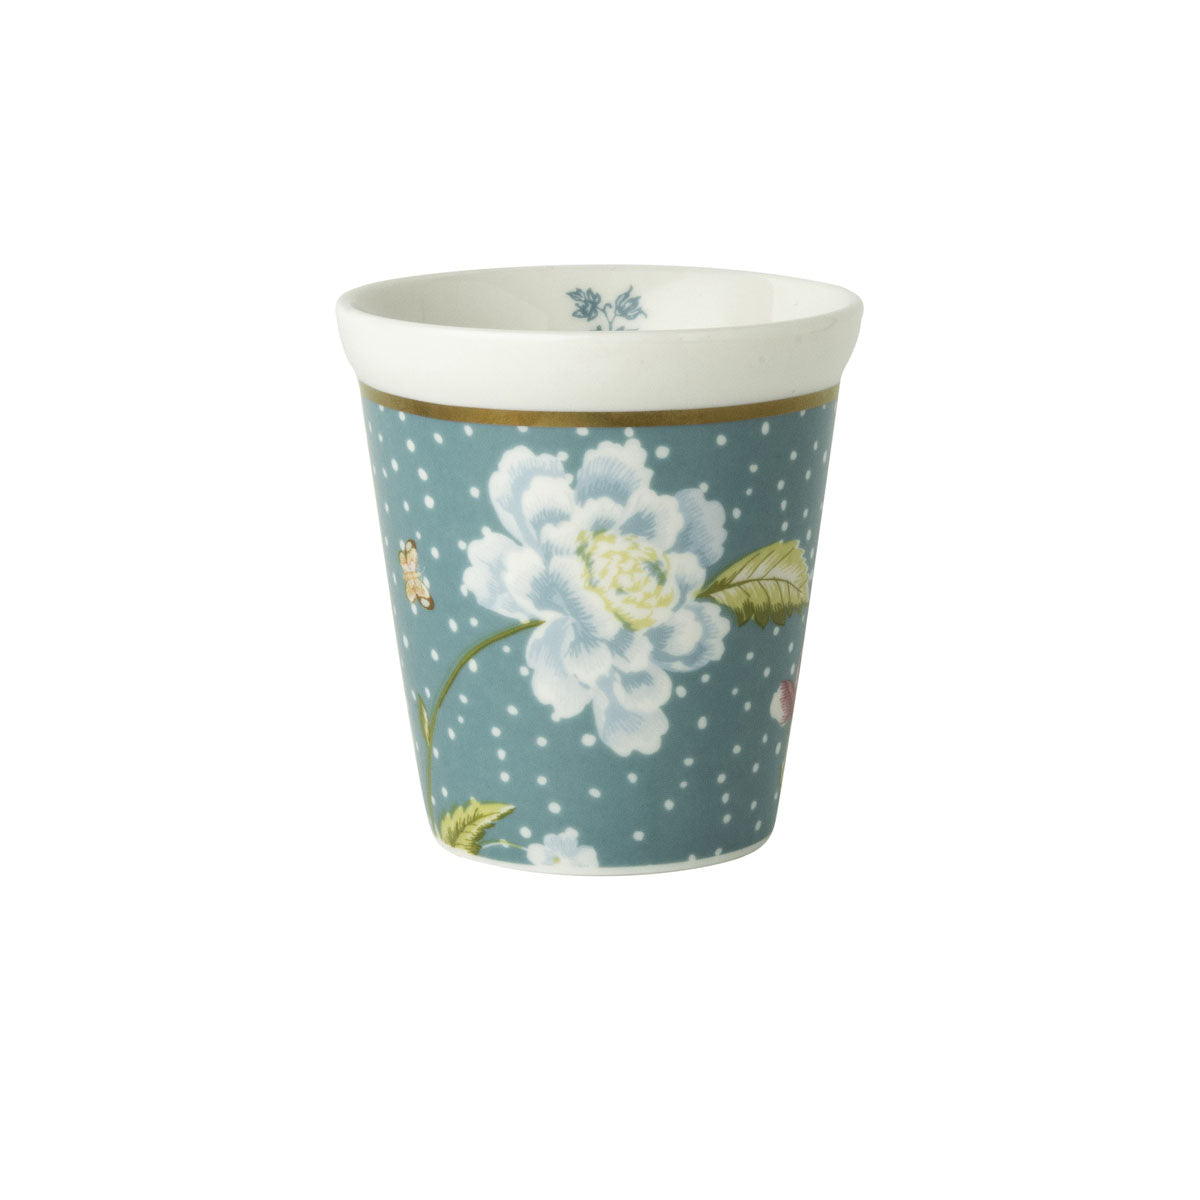 Beker zonder oor Seaspray Laura Ashley Heritage